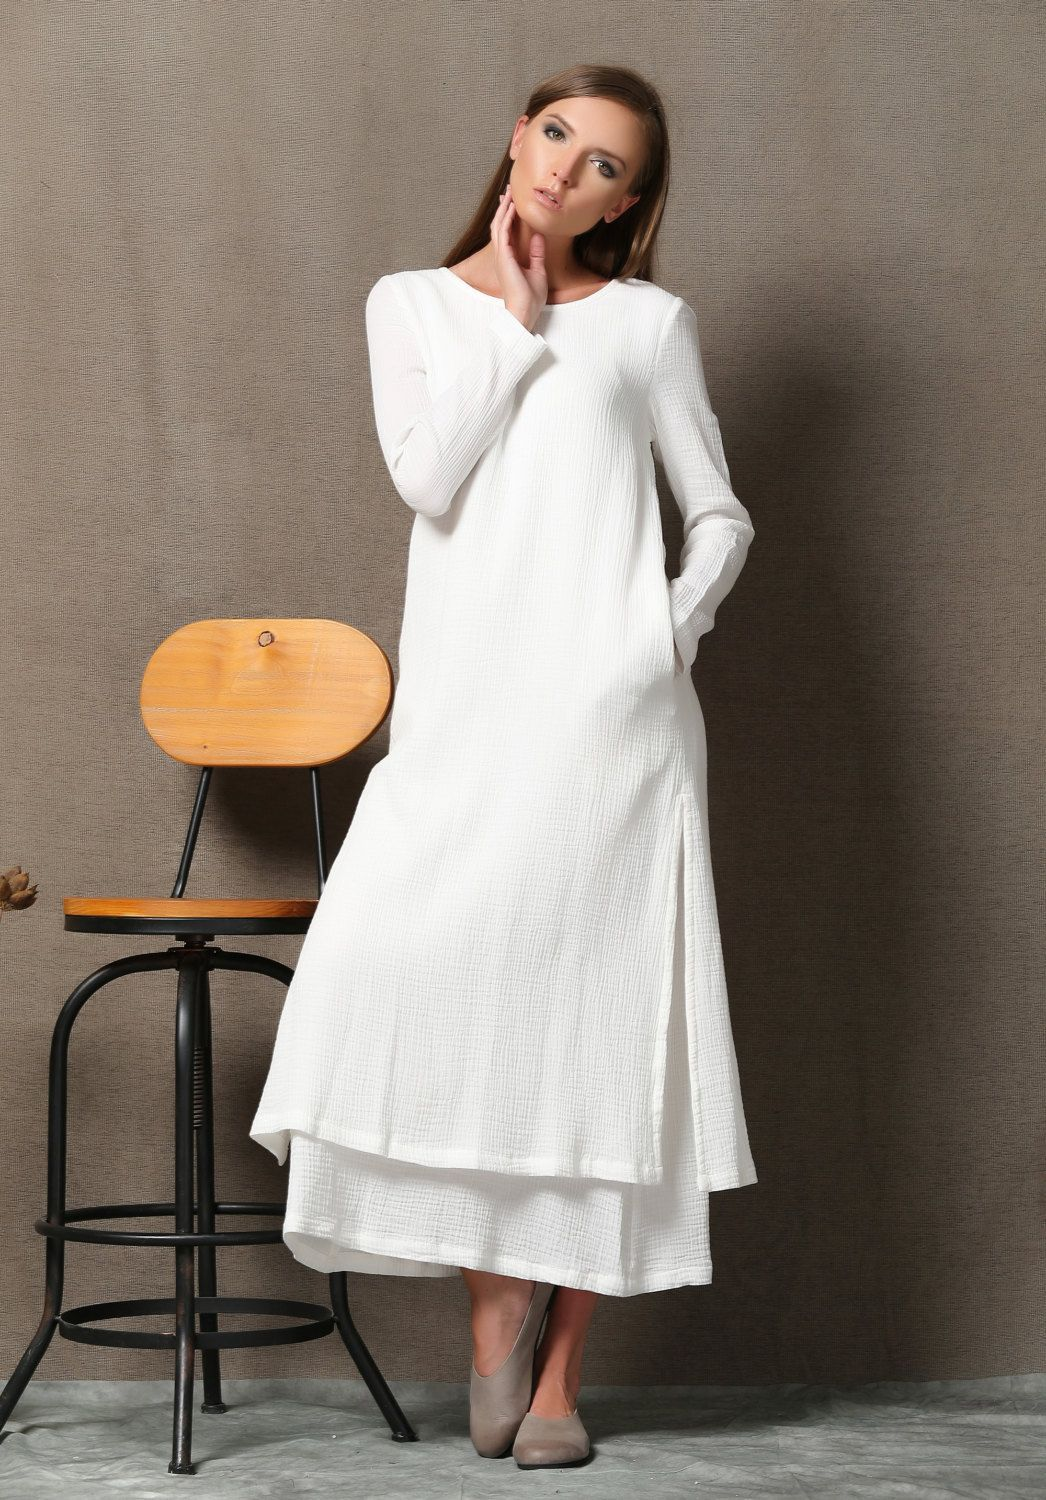 855c0190da8d White Linen Dress - Layered Loose-Fitting Plus Size Casual Comfortable Long  Sleeve Handmade Clothing C554 by YL1dress on Etsy